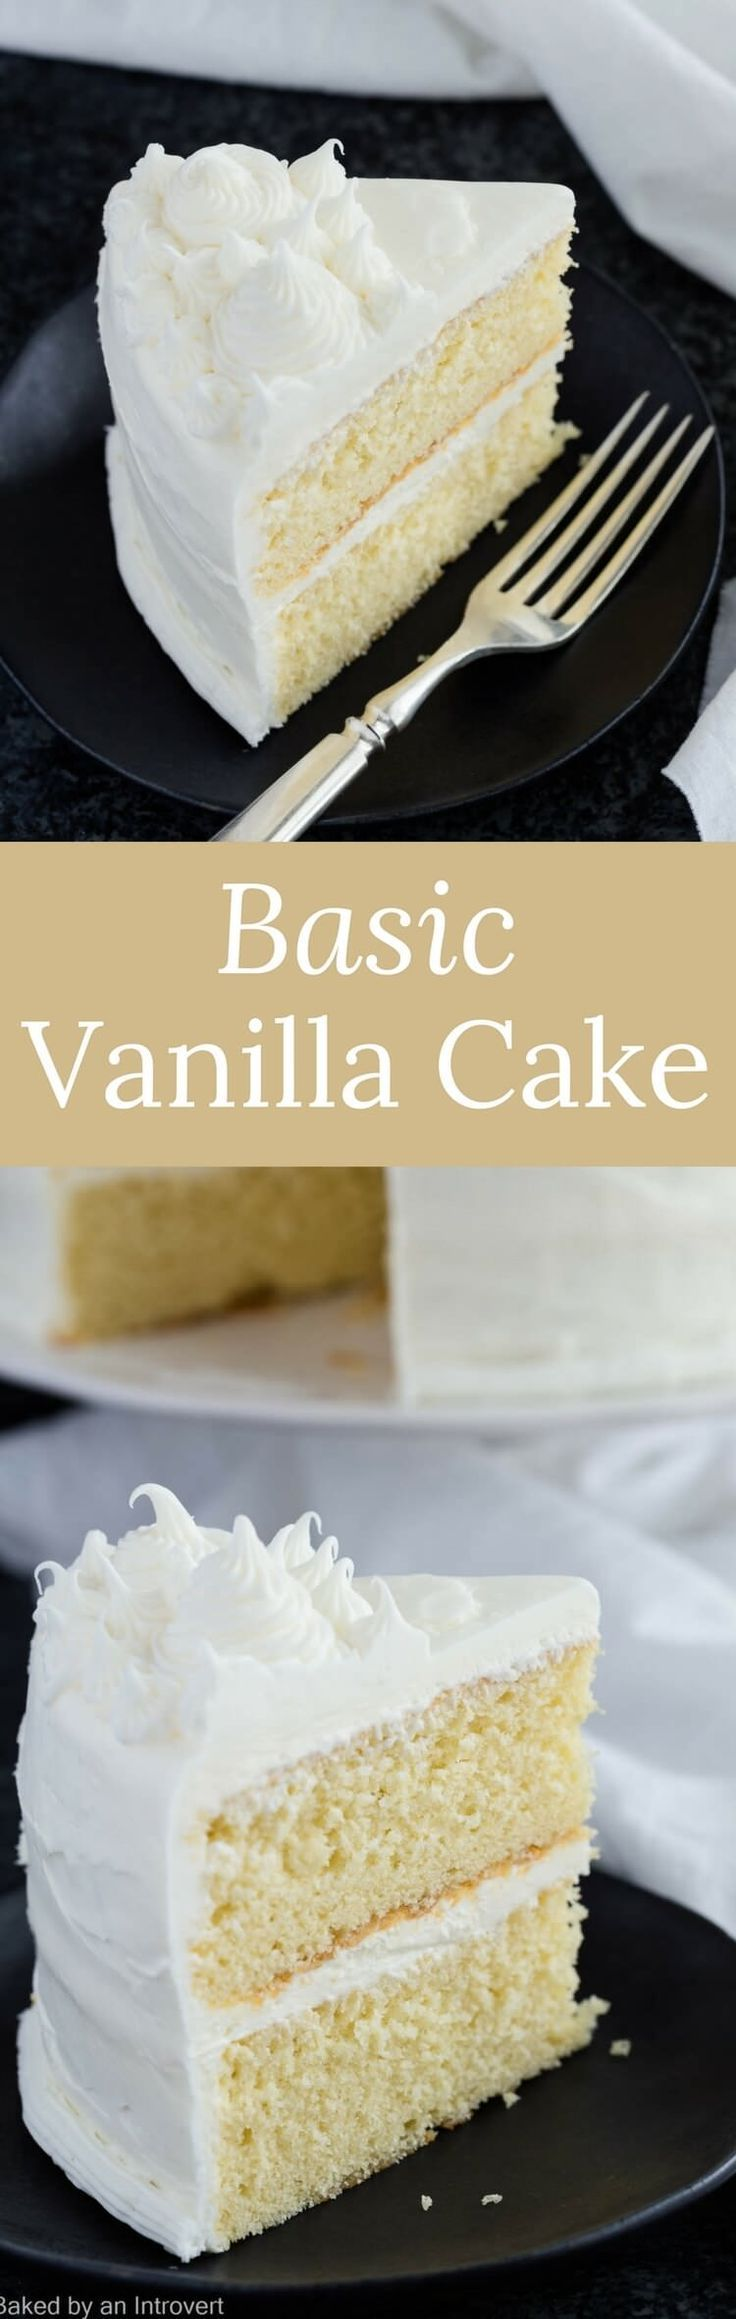 100 cake recipes from scratch on pinterest vanilla cake